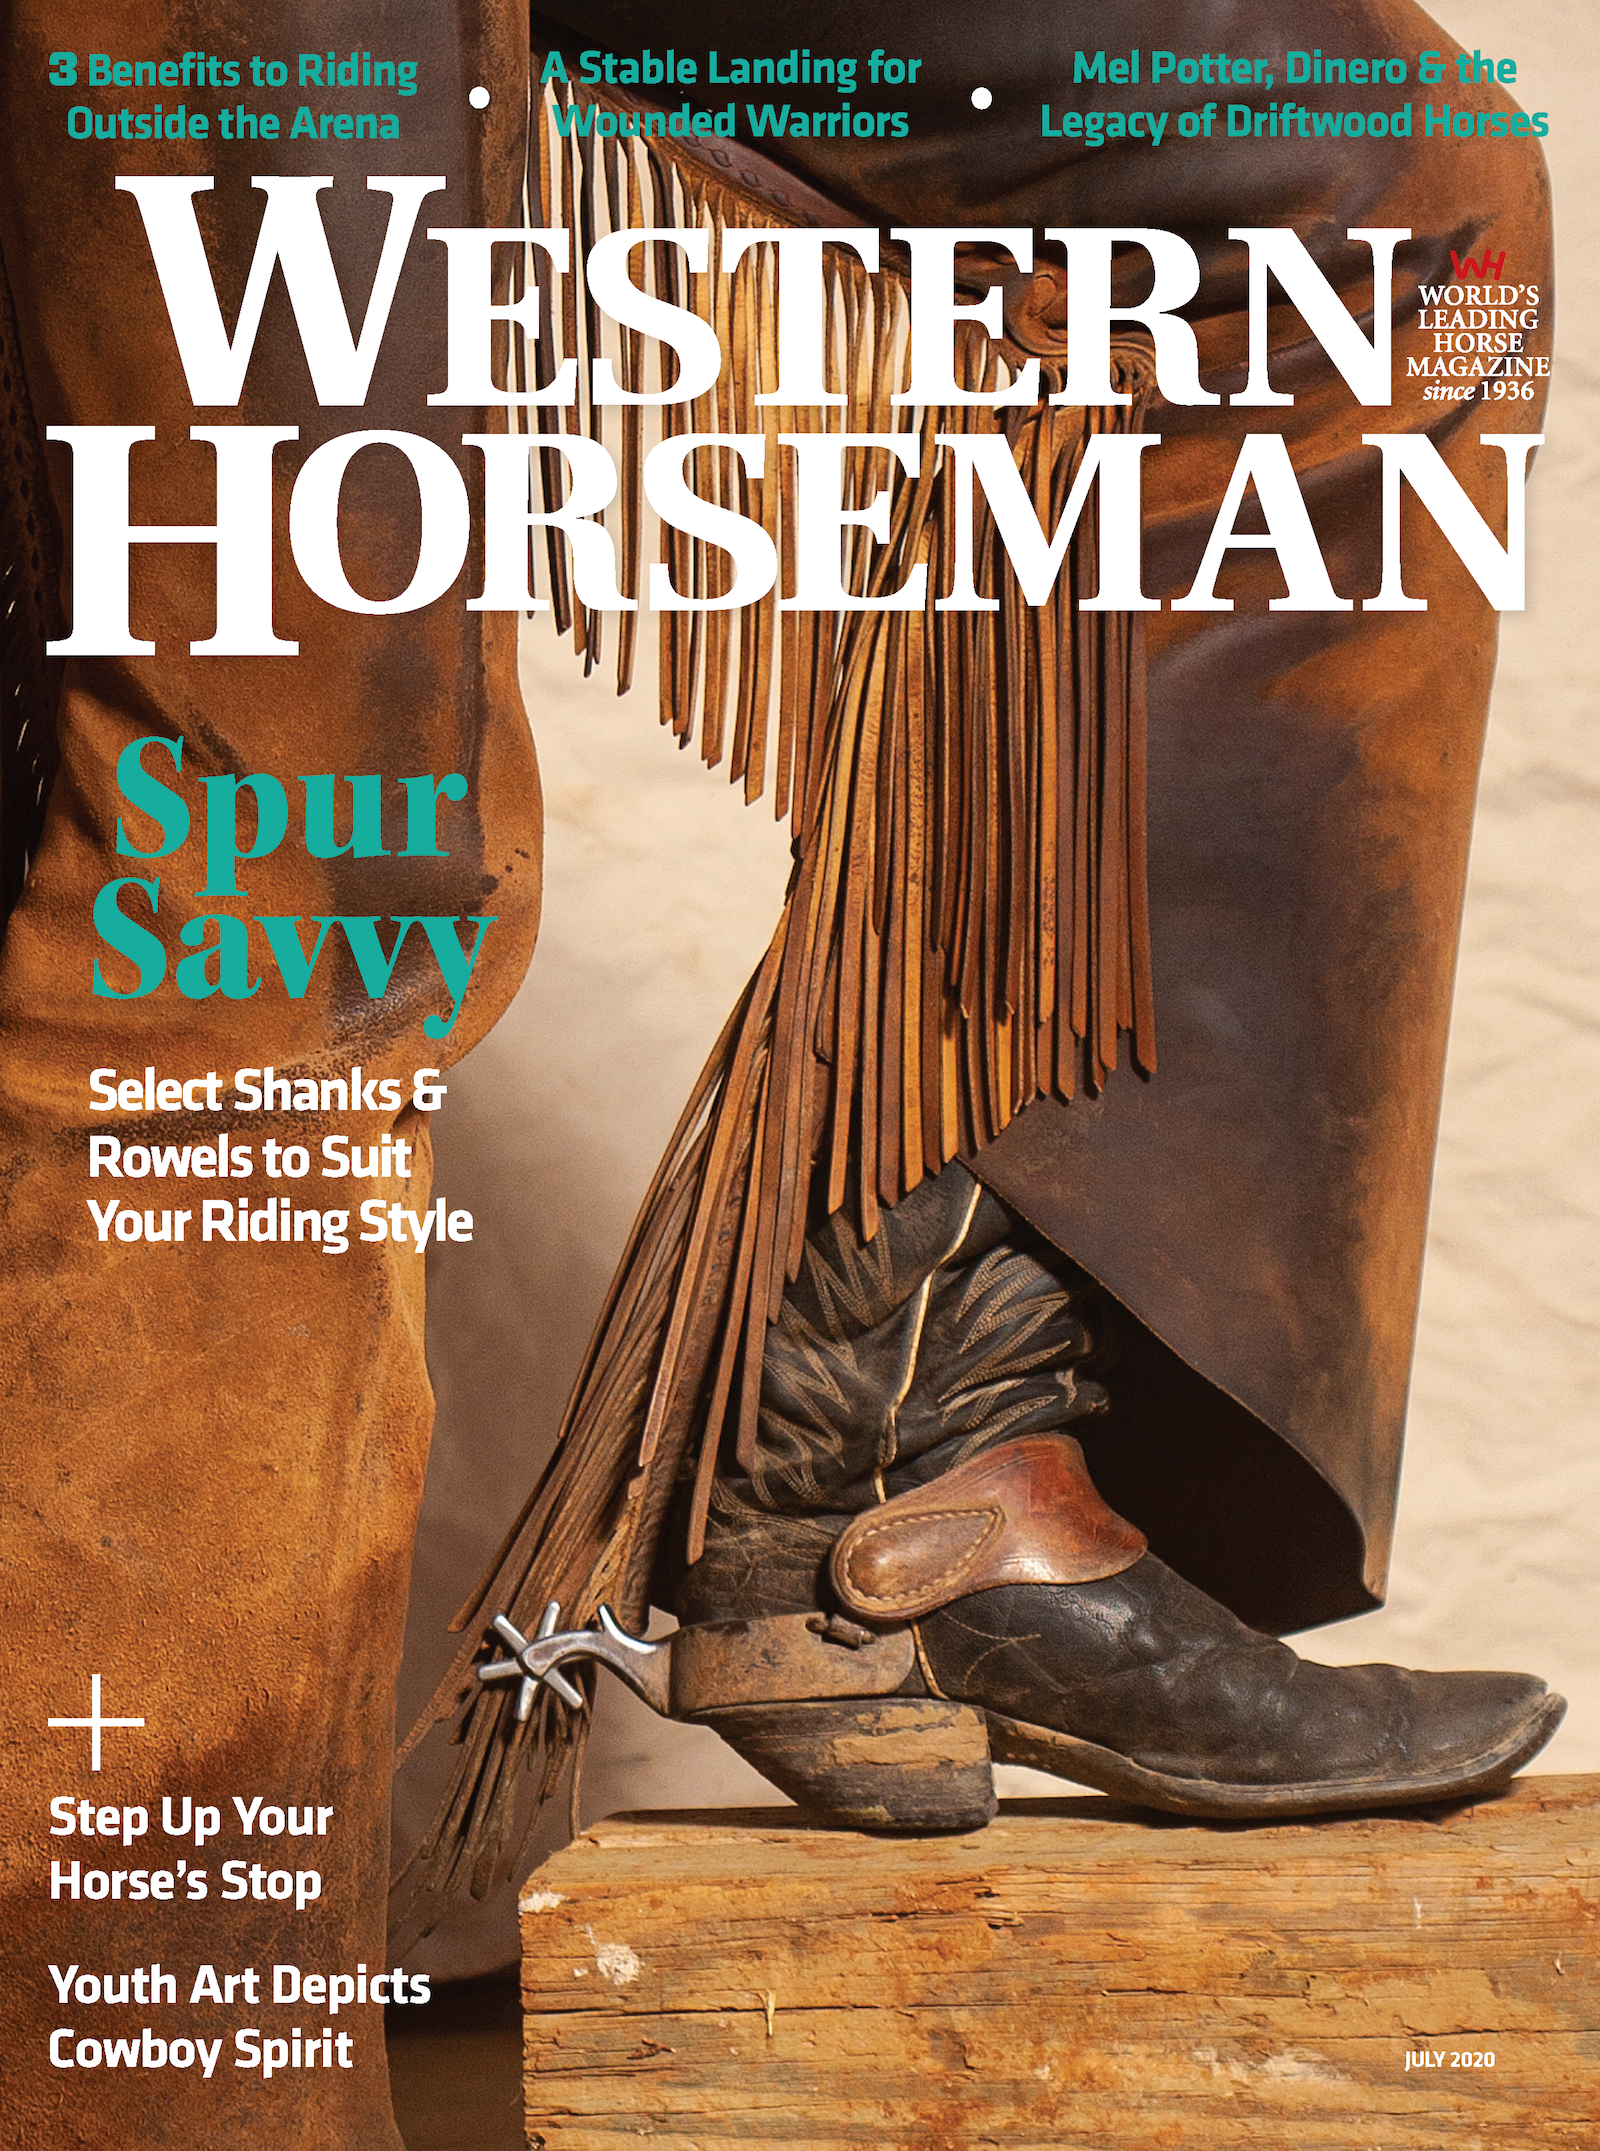 Western Horseman magazine July 2020 cover